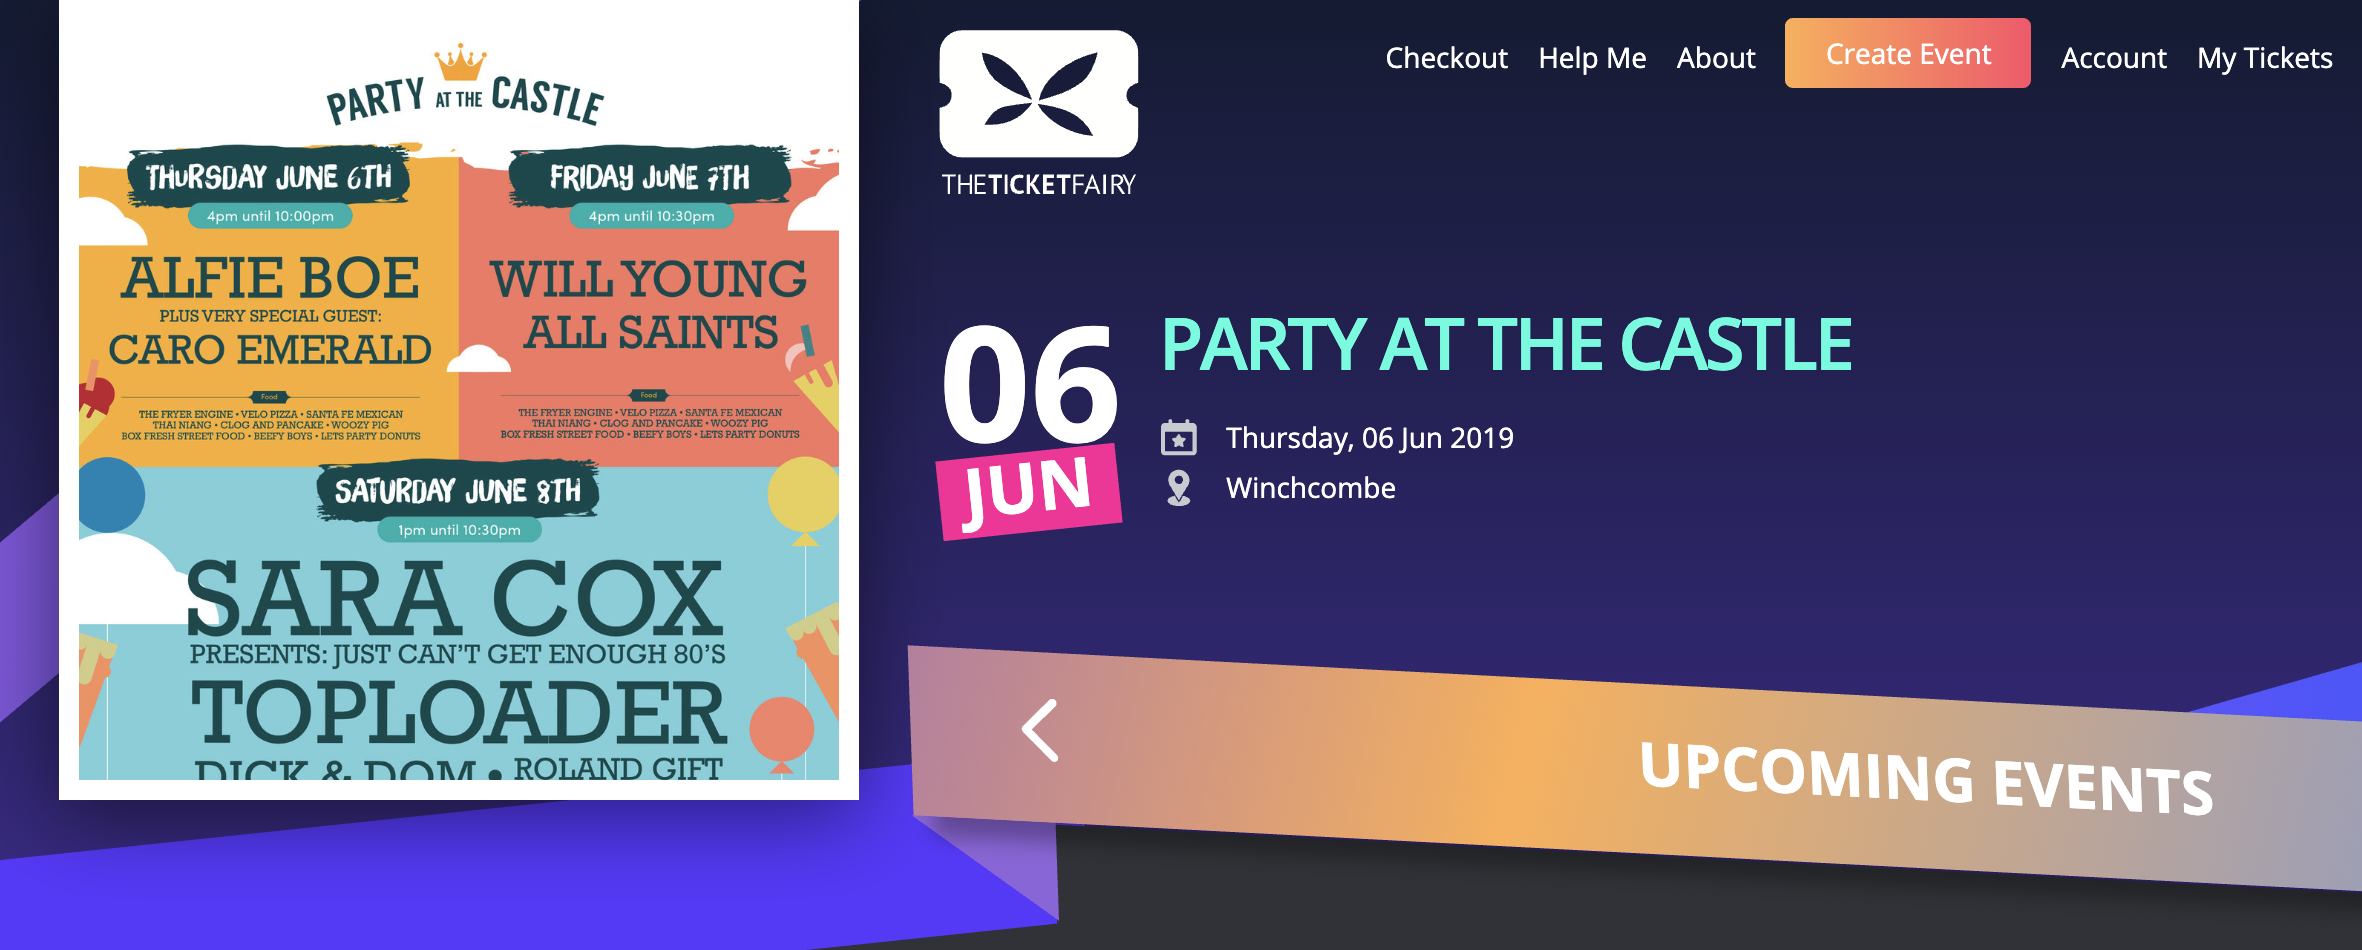 The Ticket Fairy is tech's best hope against Ticketmaster | TechCrunch